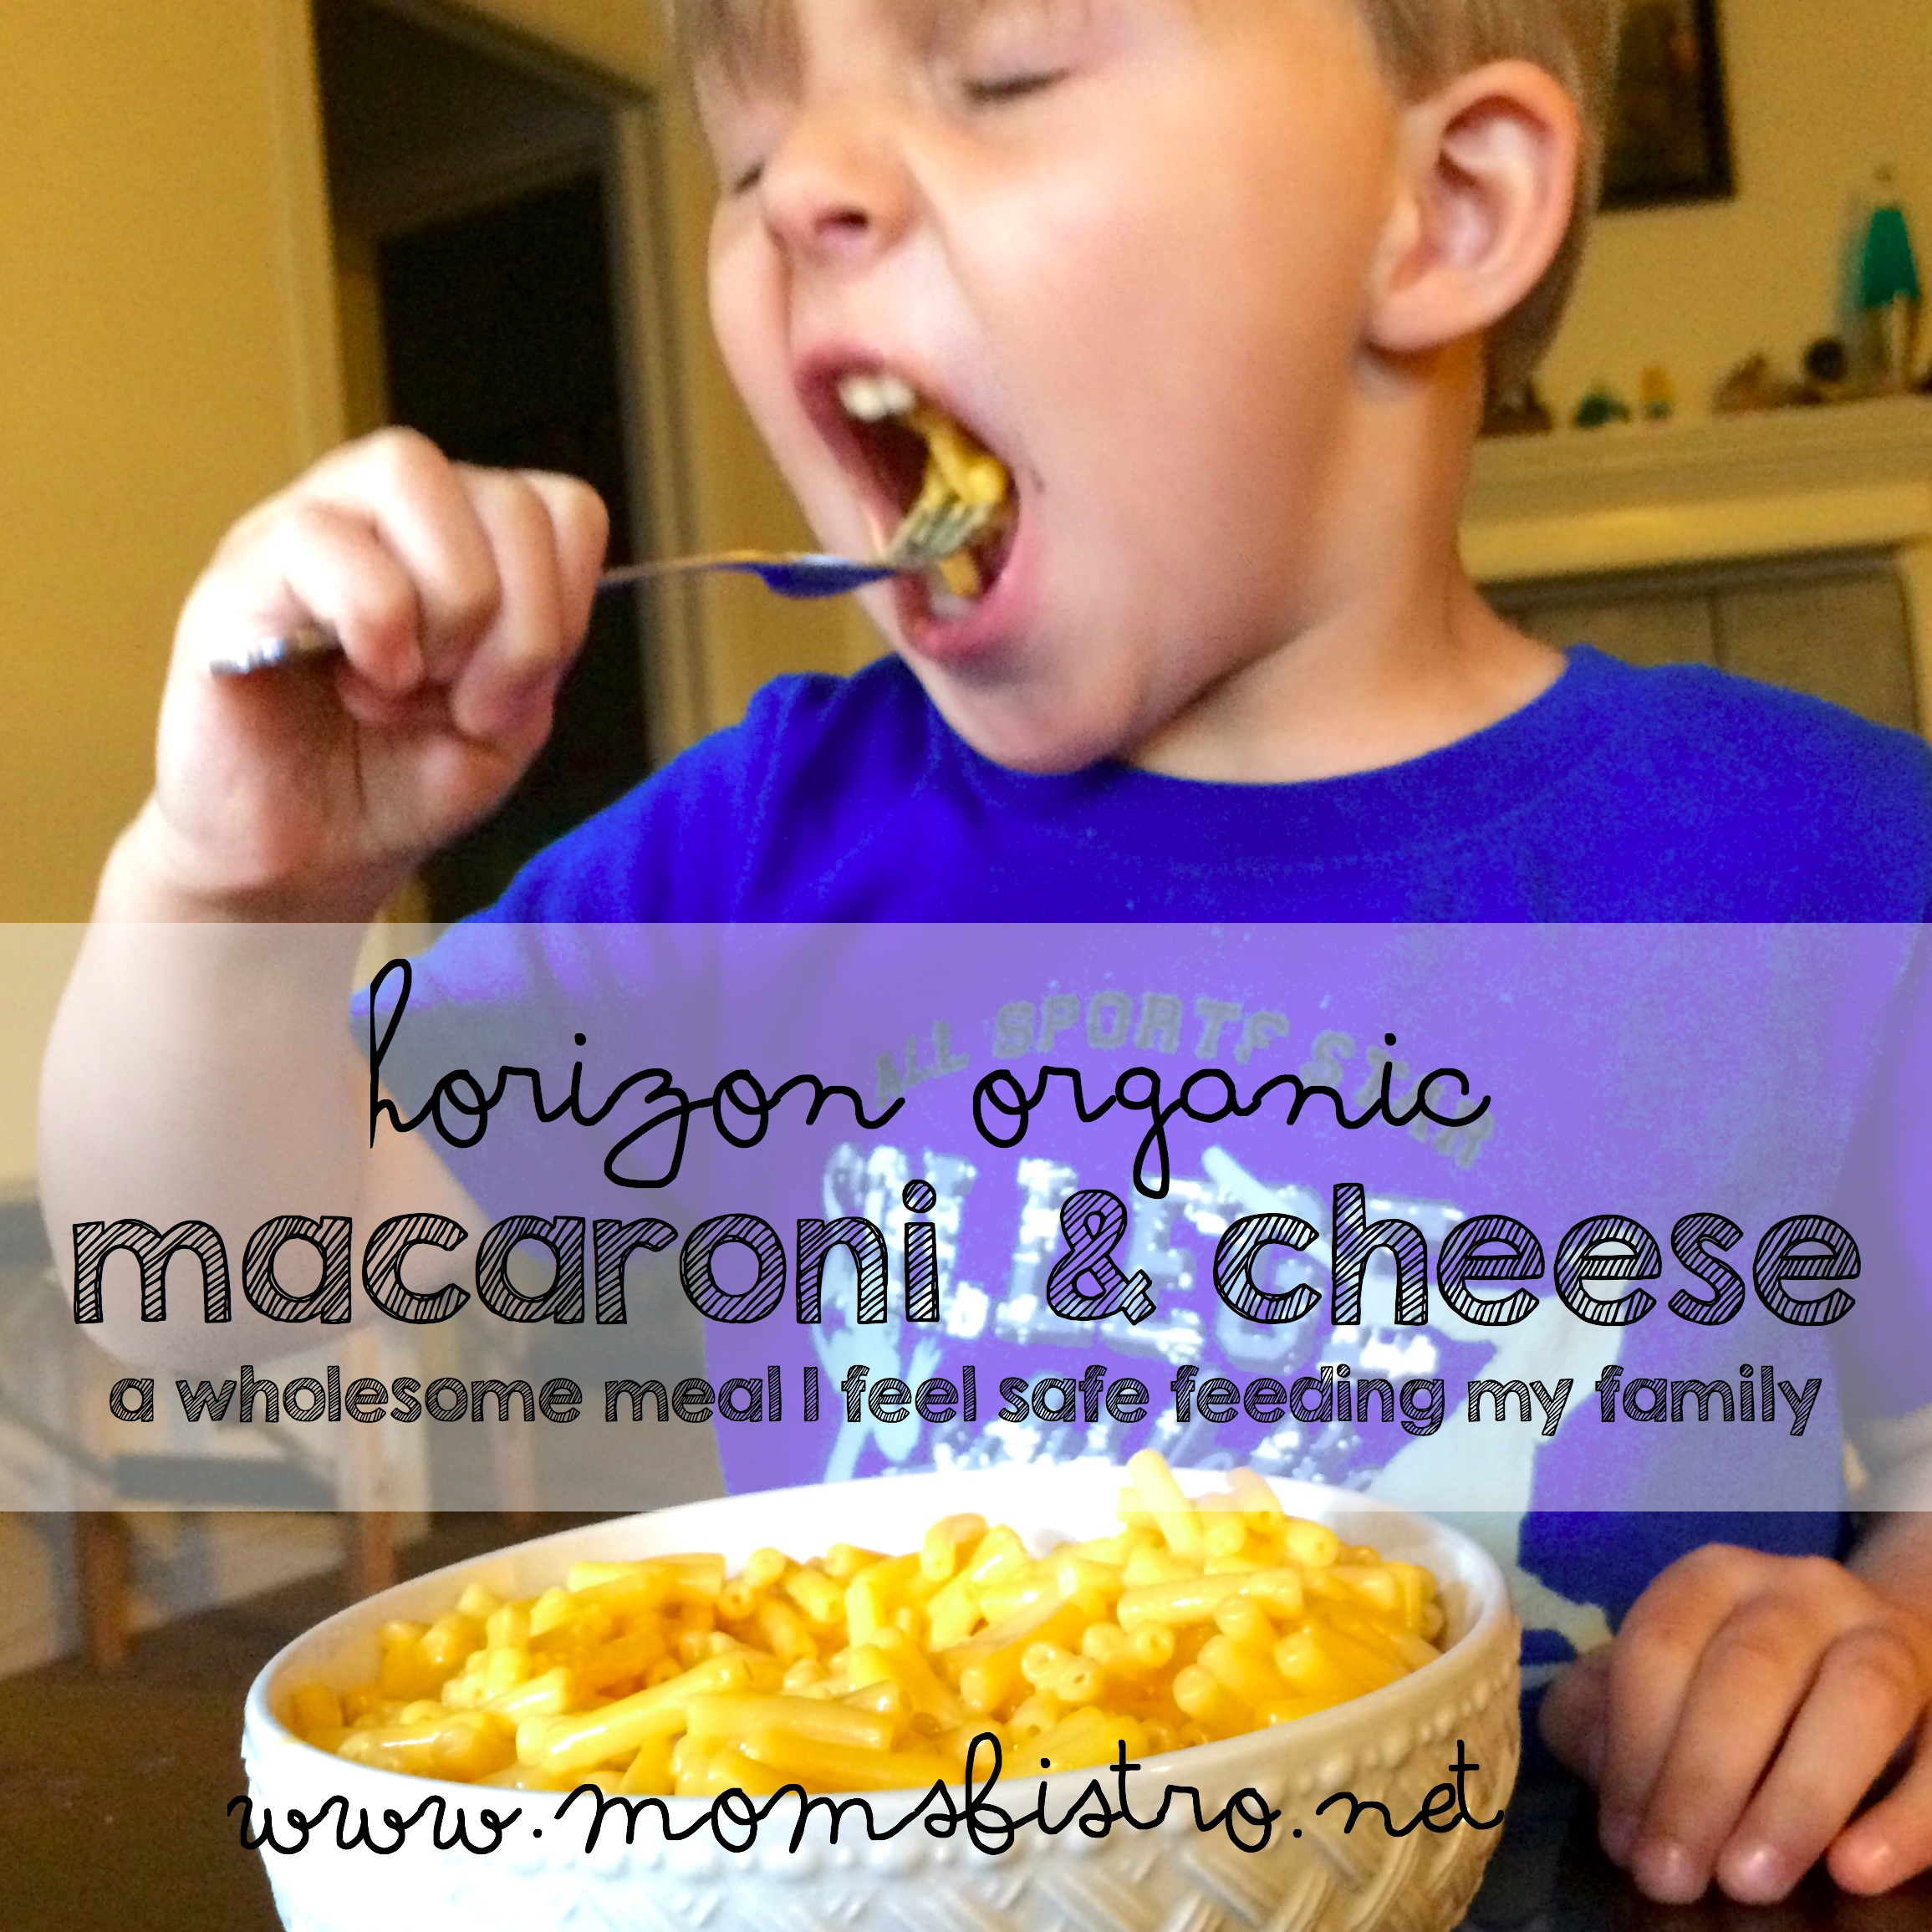 A Weeknight Meal You Feel Safe Feeding Your Kids For Those Nights When You Just Don't Feel Like Cooking | Horizon Organic Macaroni and Cheese Review